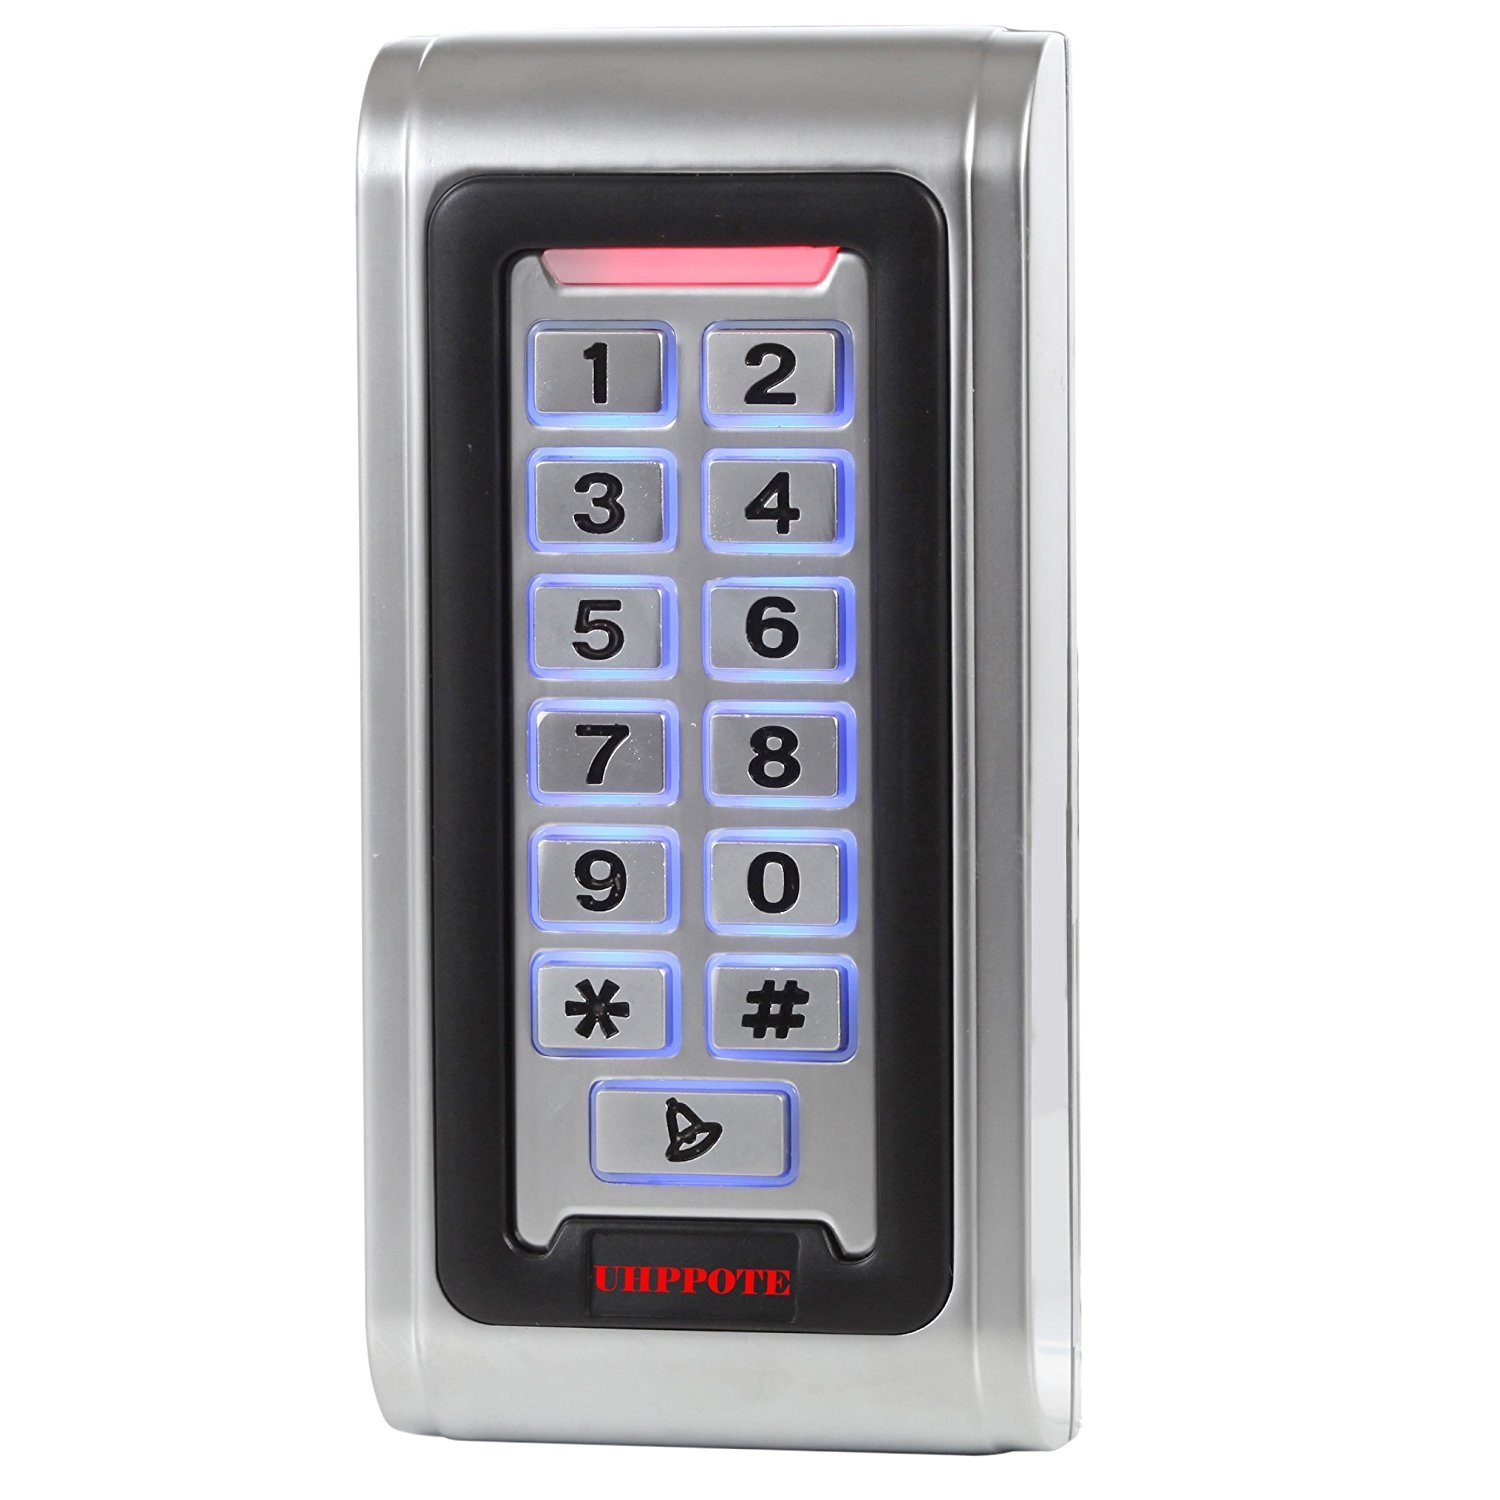 UHPPOTE Waterproof IP68 Metal Case Stand-Alone Access Control Keypad with Wiegand 26 bit Interface for 125khz RFID Card by UHPPOTE